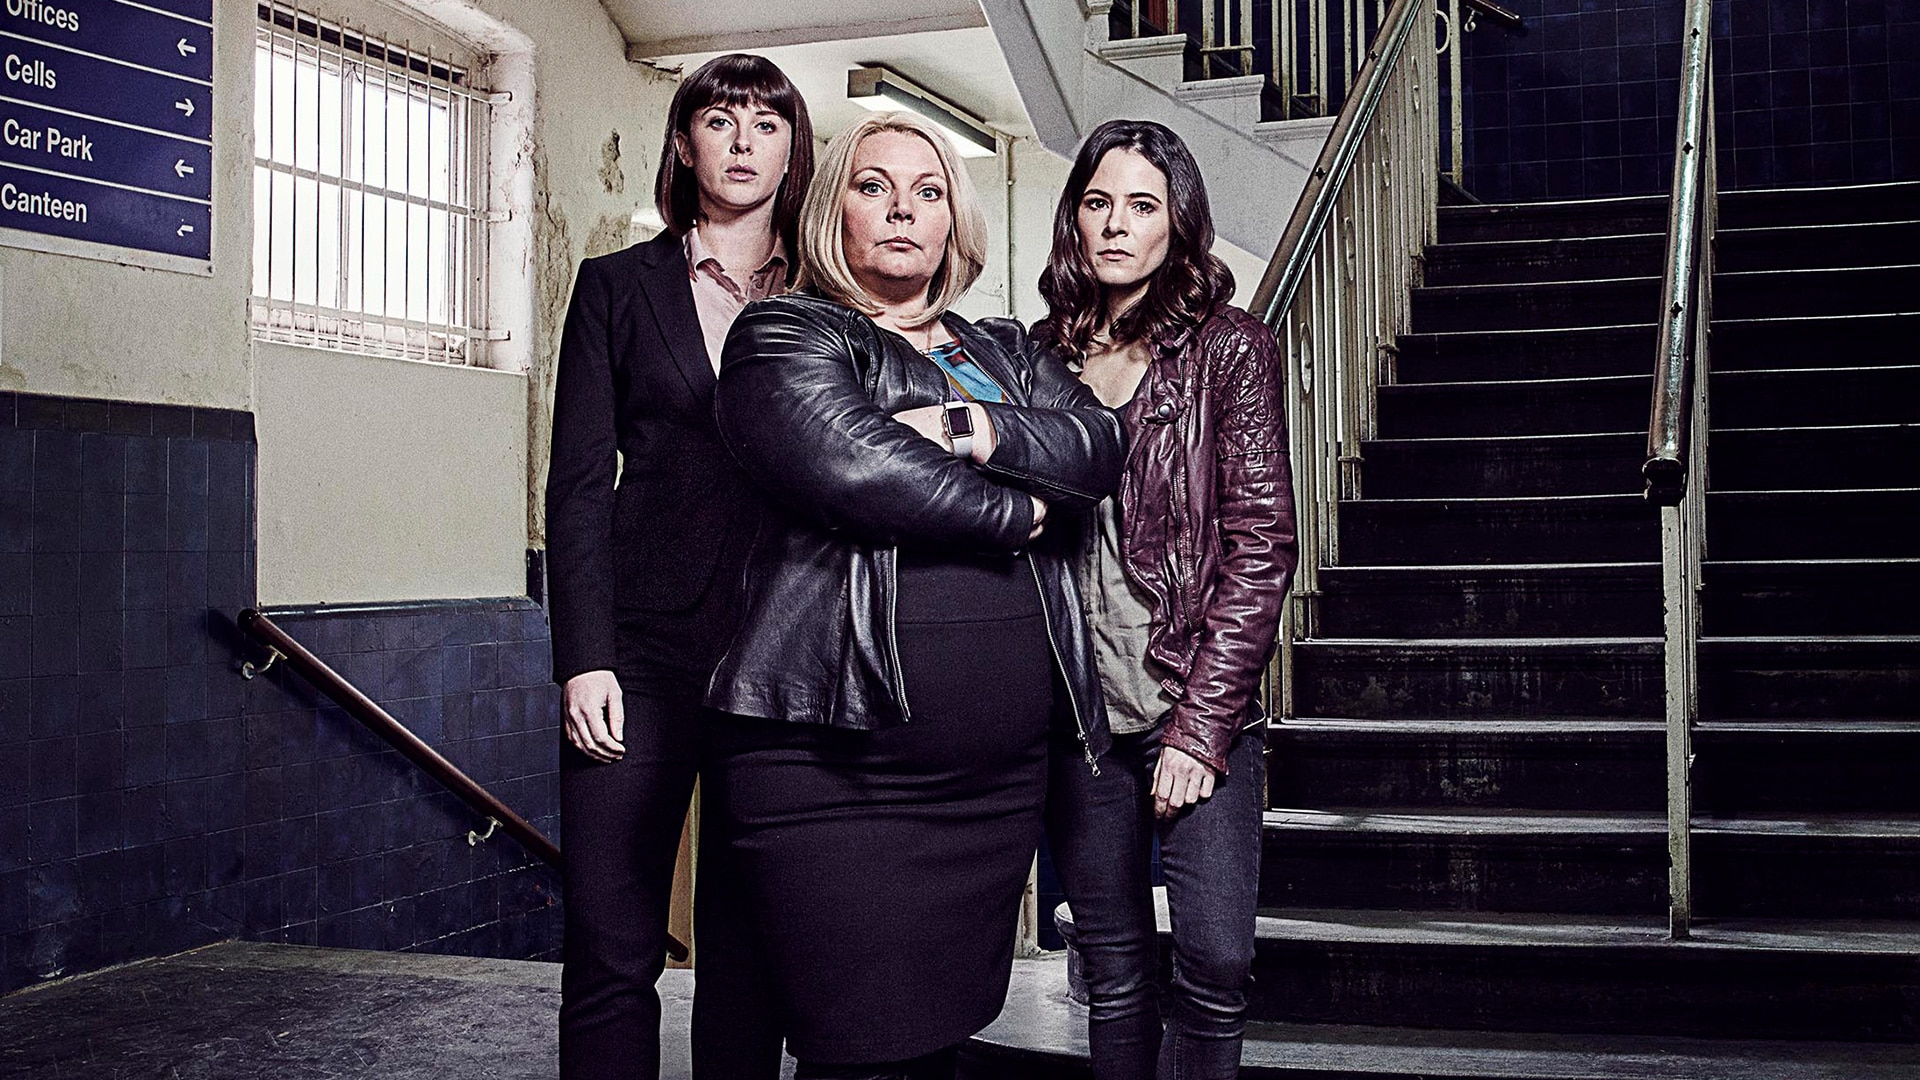 No Offence - All 4